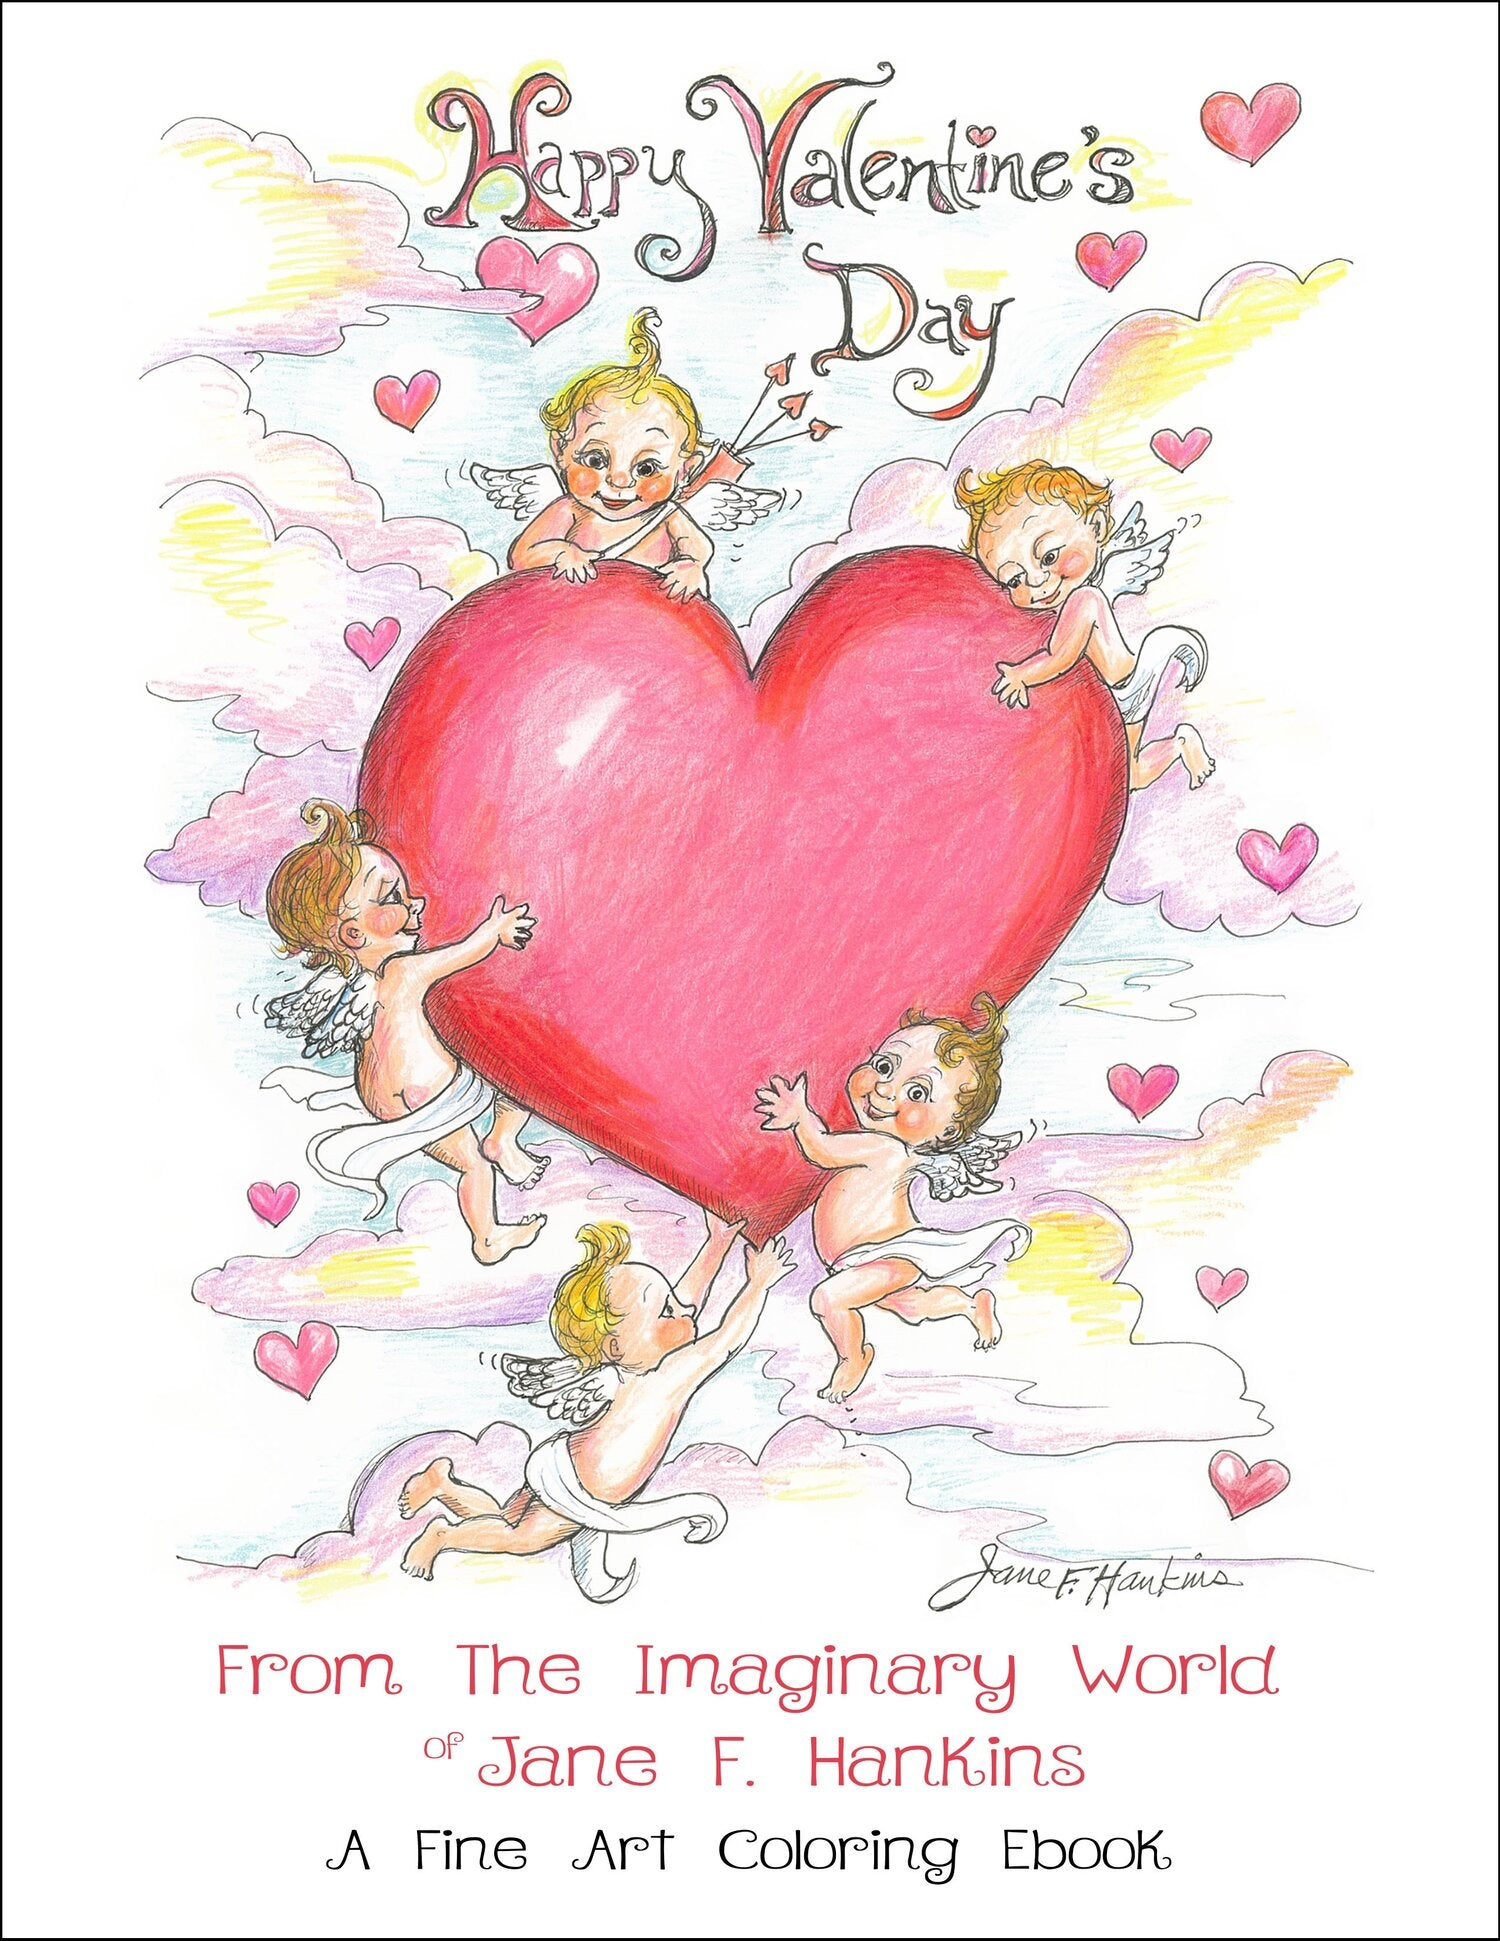 Happy Valentine's Day From The Imaginary World of Jane F. Hankins